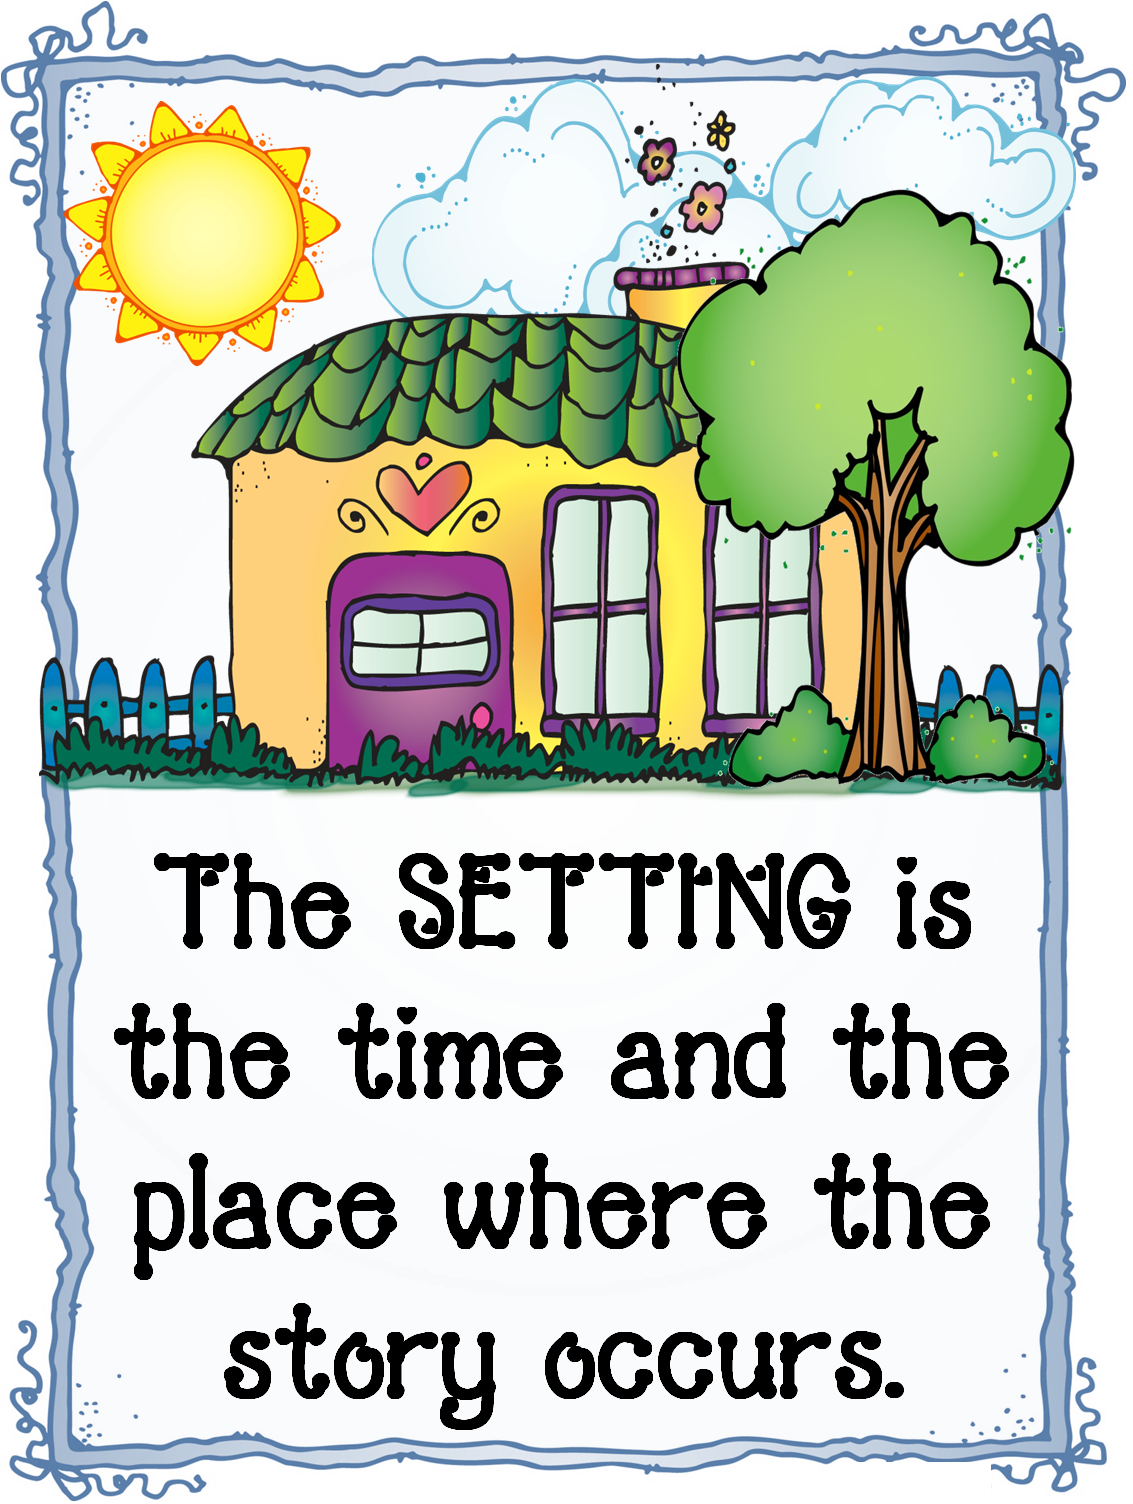 picture Setting clipart. Free story cliparts download